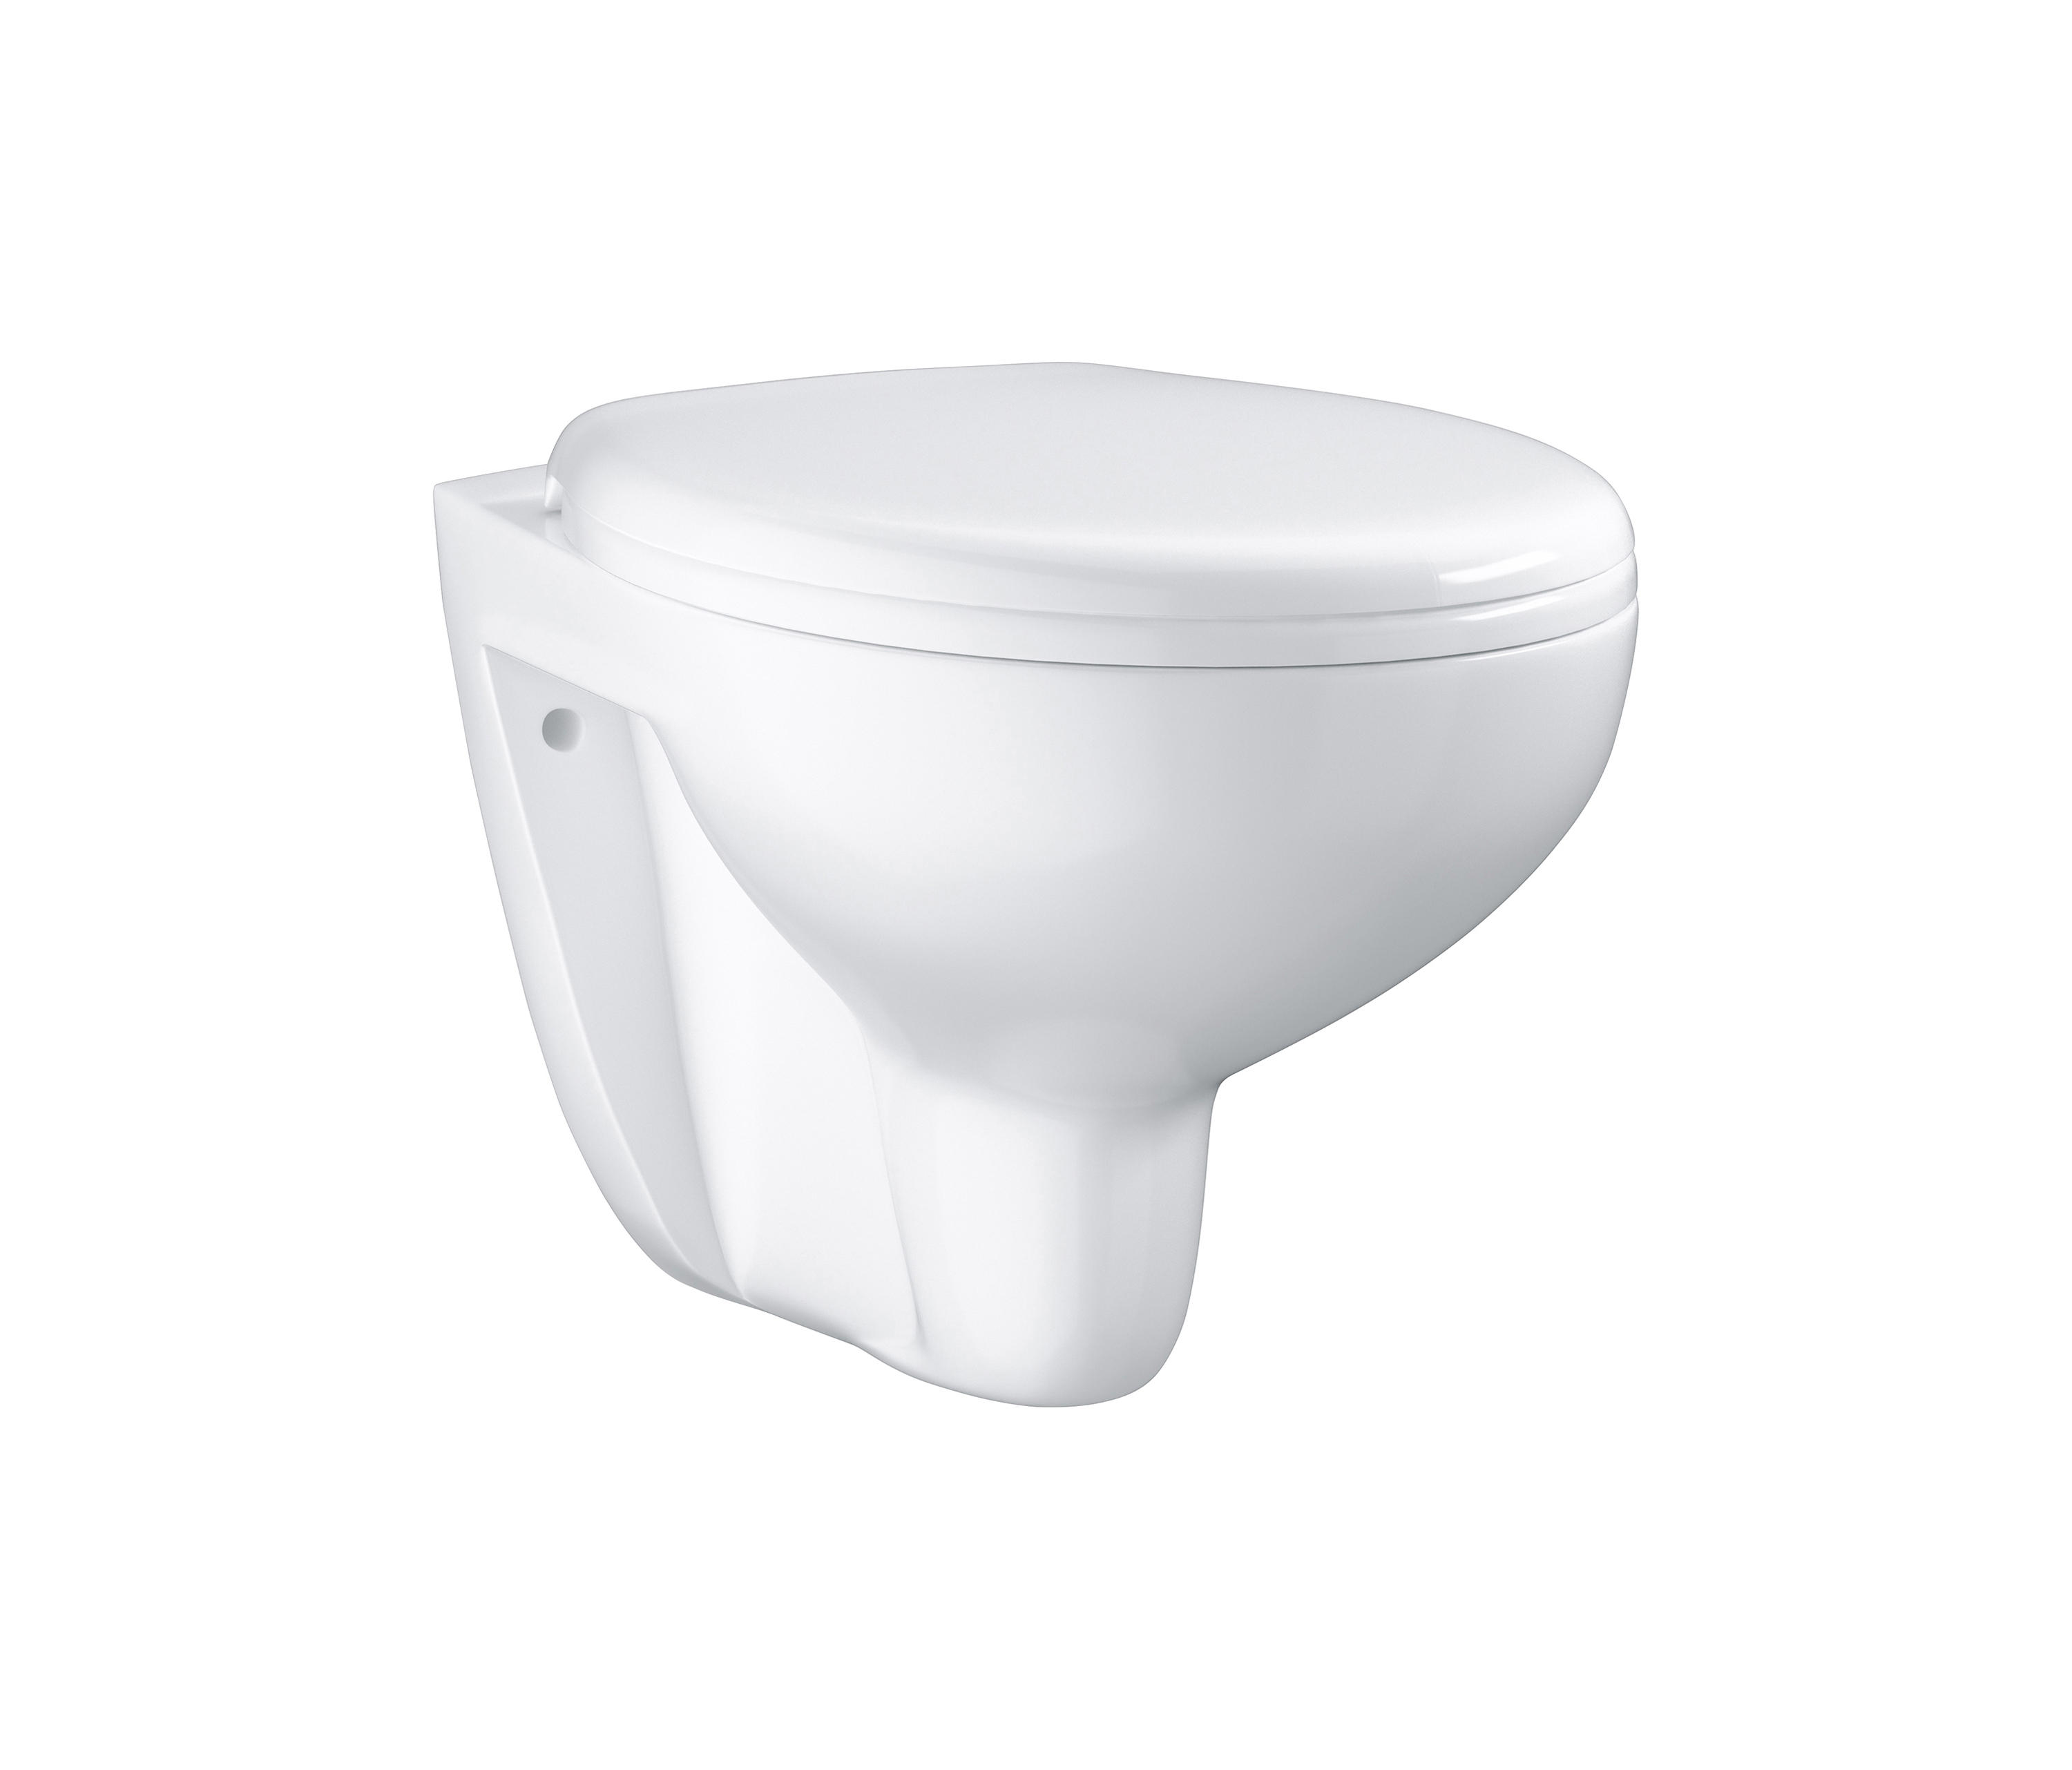 BAU CERAMIC WC WALL HUNG - WC from GROHE   Architonic